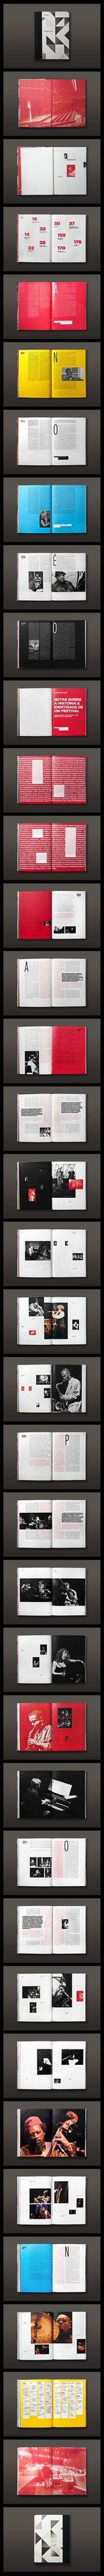 Jazz 20 Year Edition Book #year #edition #jazz #book #20